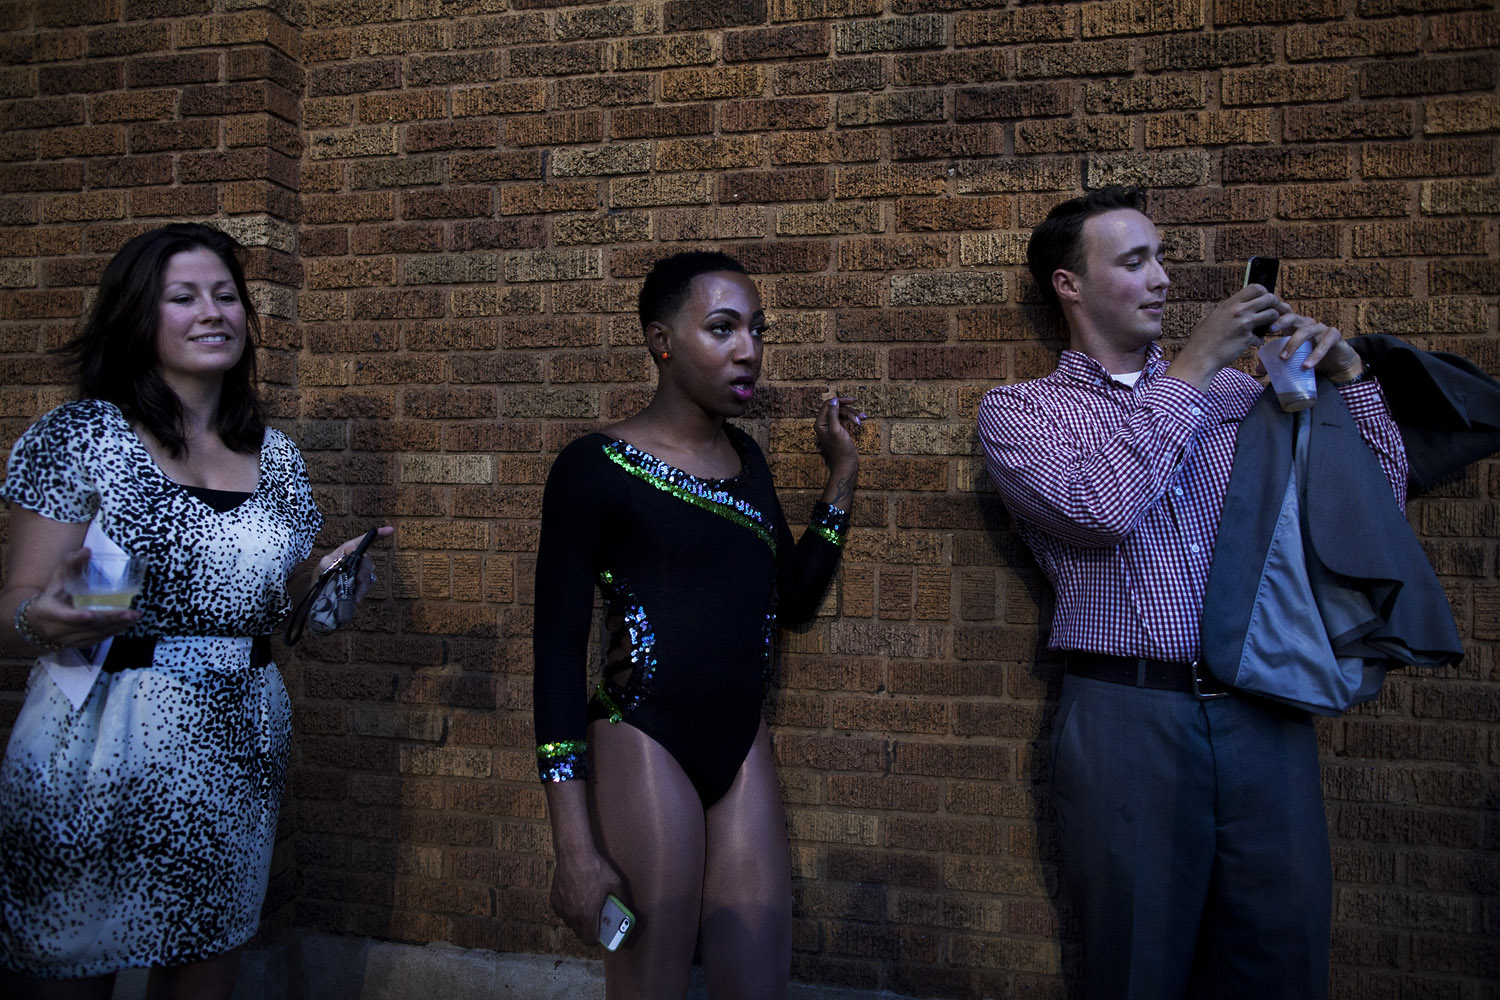 Jerel stands behind the Saenger Theater watching as fans of the Prancing Elites take photos with various the line members.